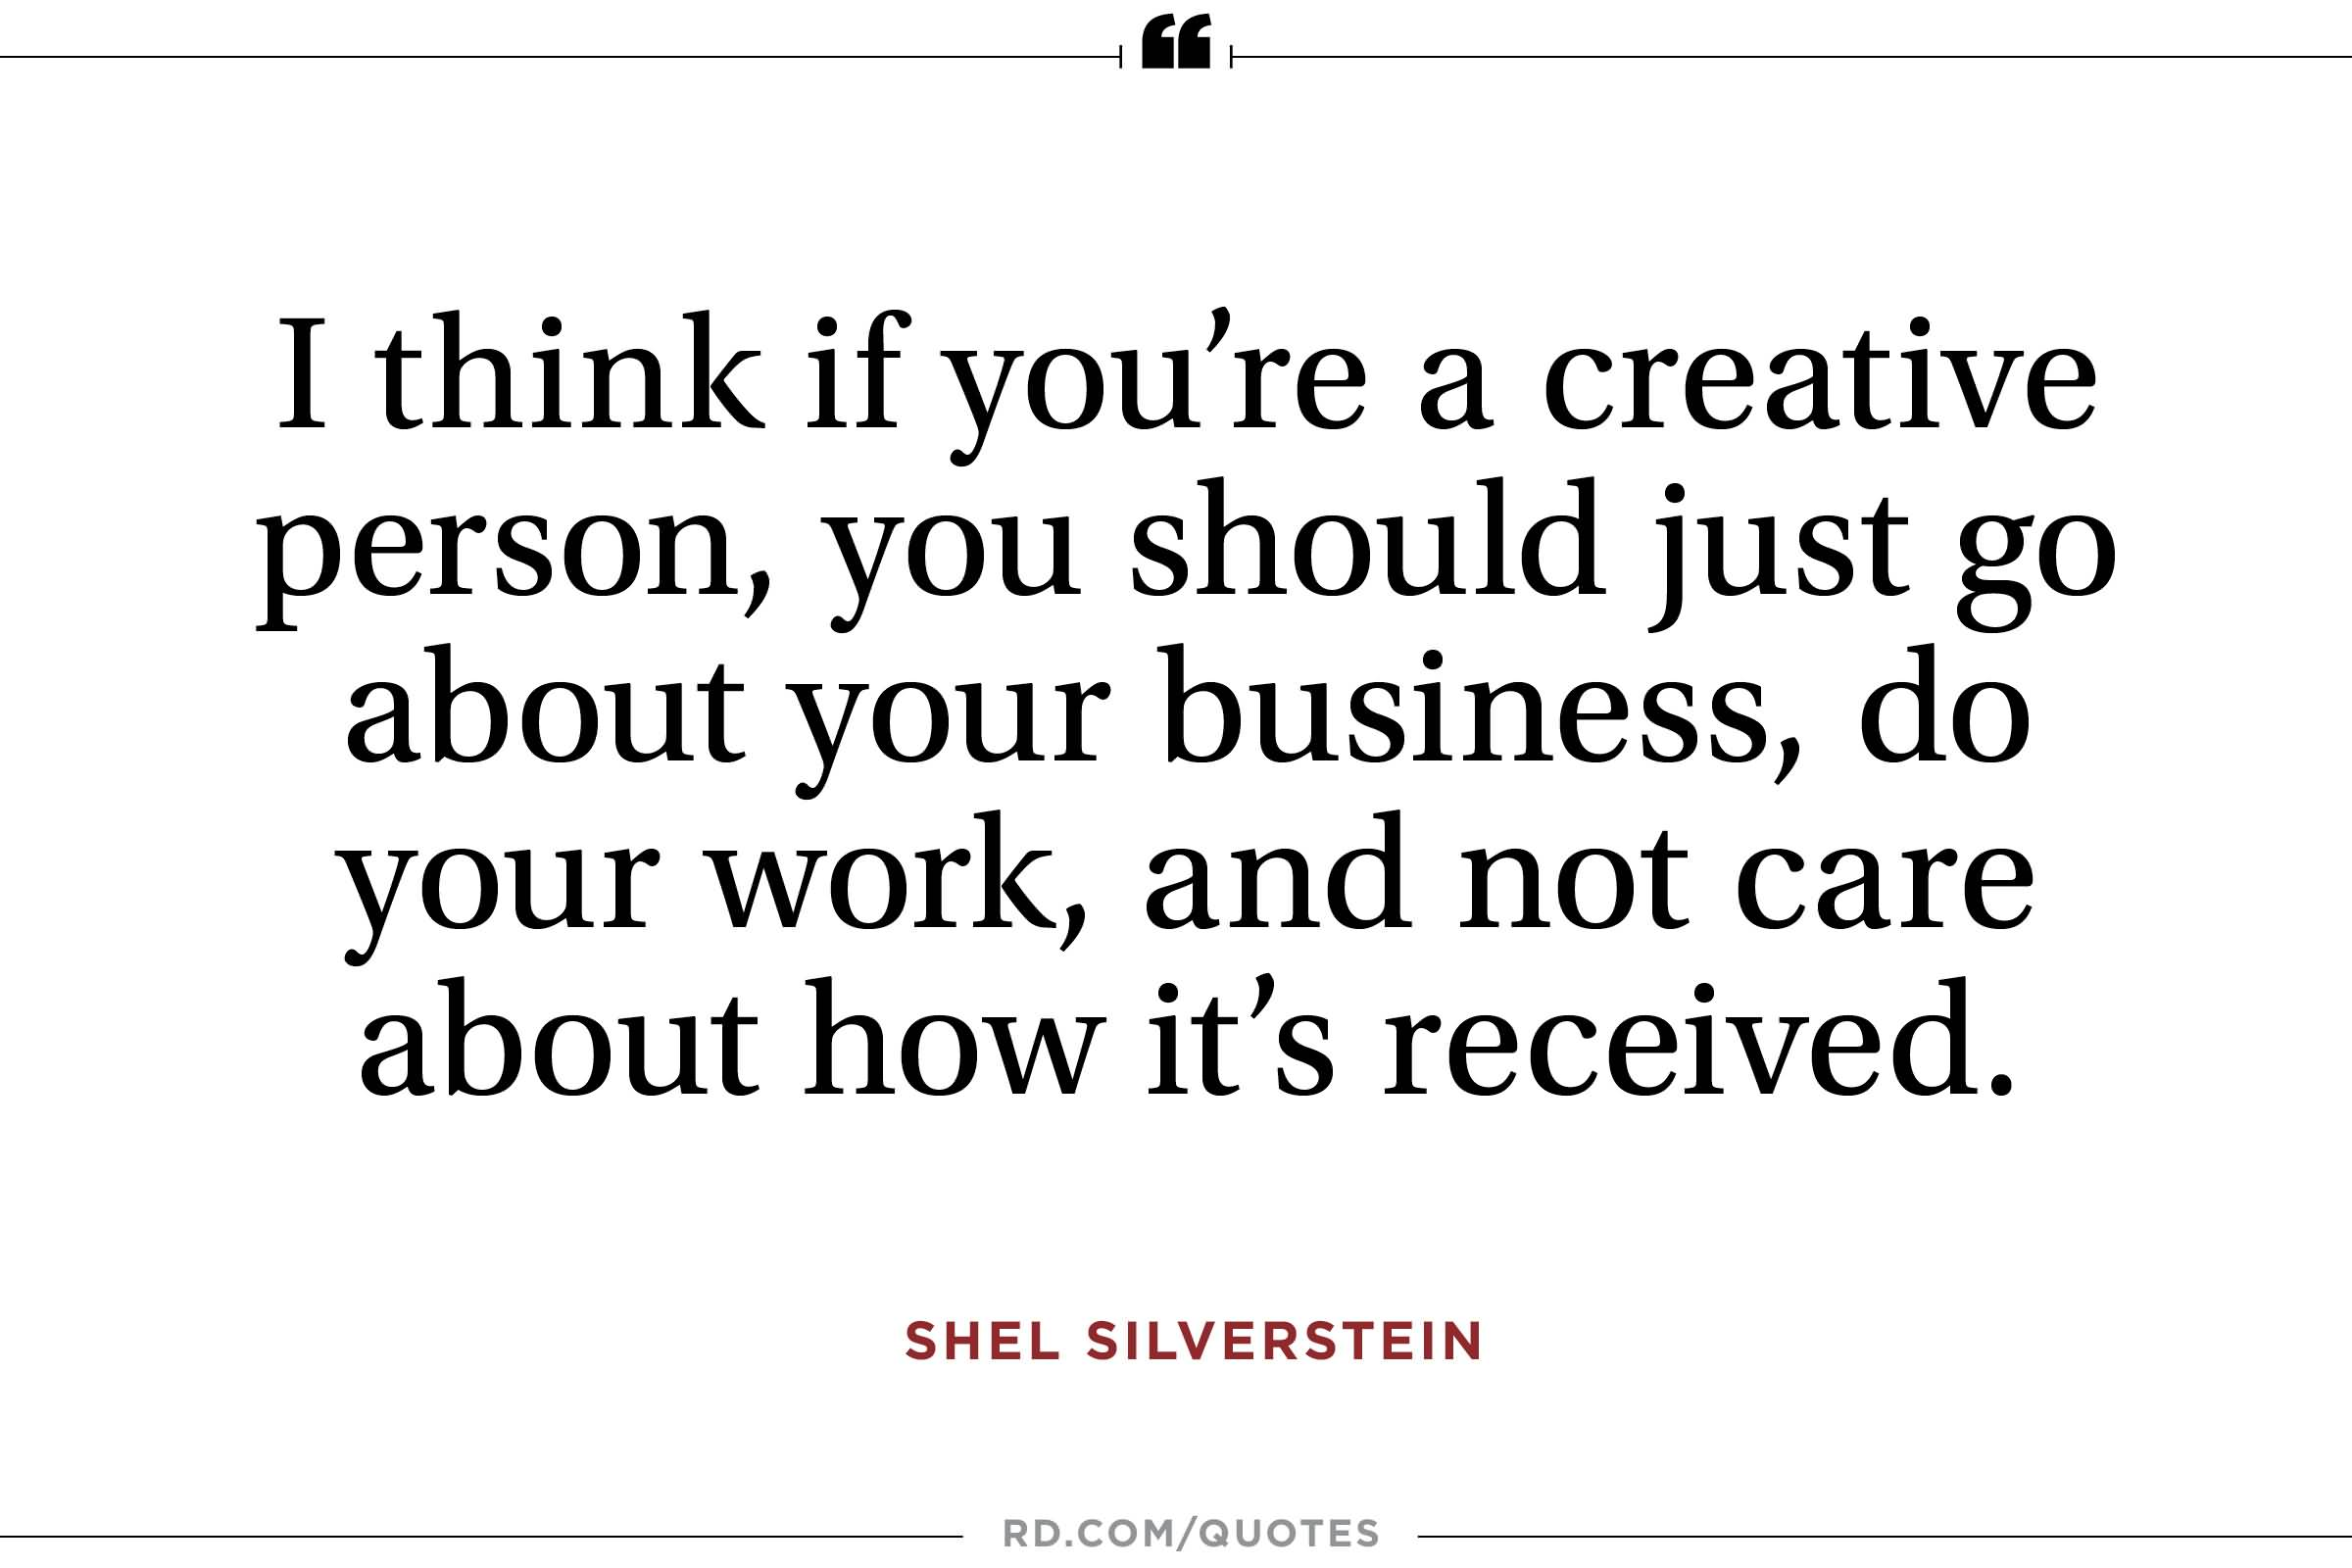 Shell Silverstein Quotes: 25 Shel Silverstein Quotes Sayings Pictures And Graphics